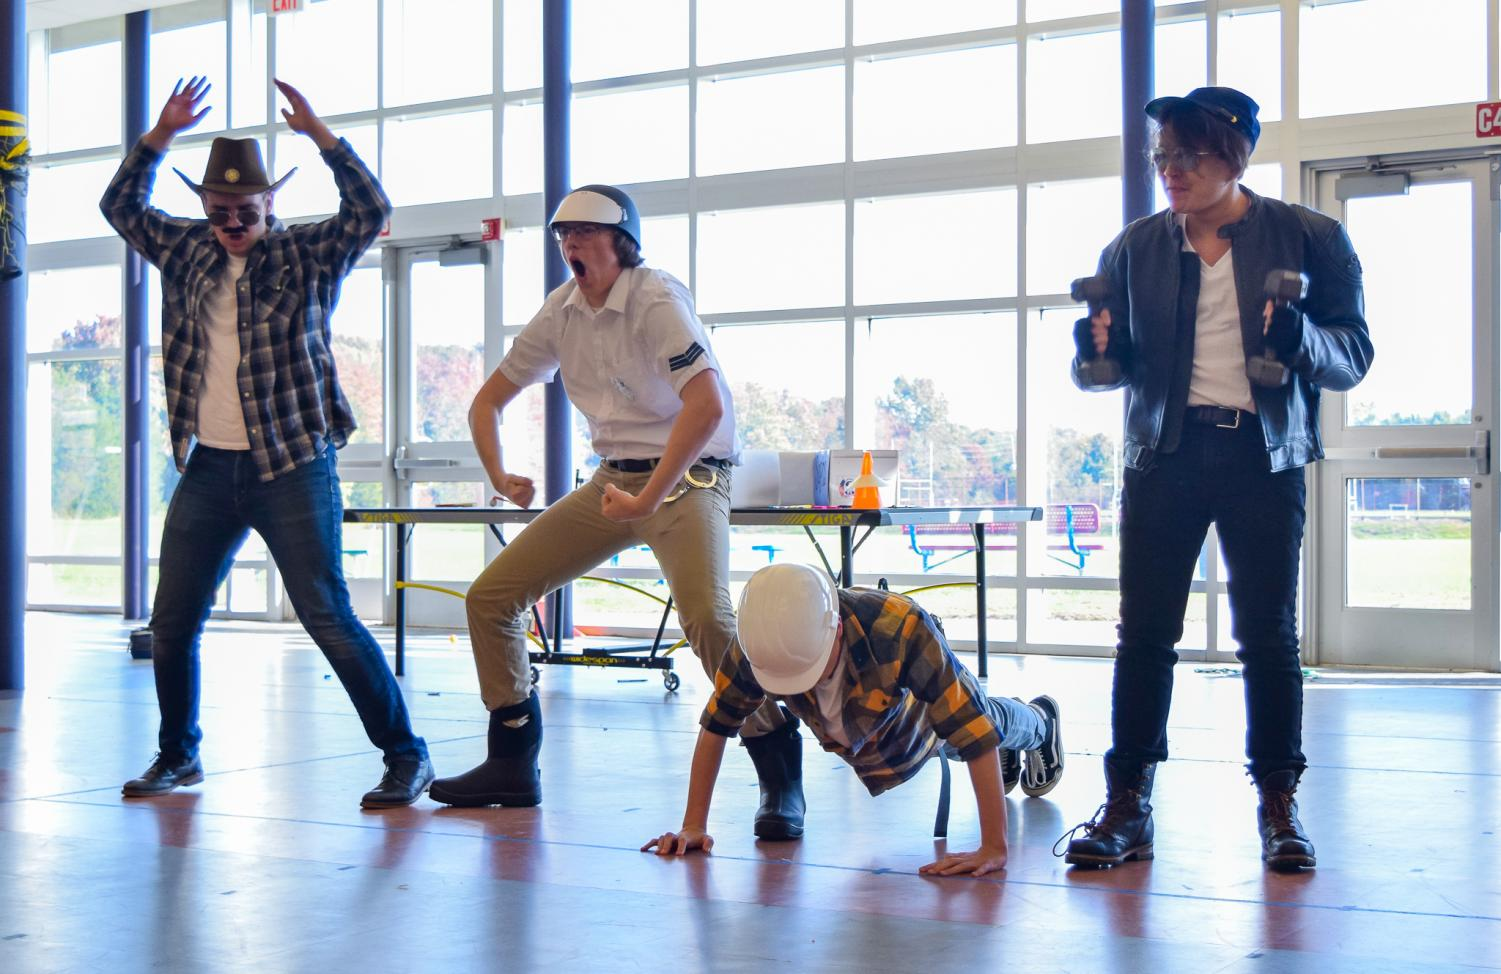 Juniors Vaughn Battista of Tinton Falls, Ryan Swanson of Brielle, Michael Landolfi of Tinton Falls, and Nick Chunn of Tinton Falls were just a few of the many students that entered the annual Halloween Costume Contest on Wed.